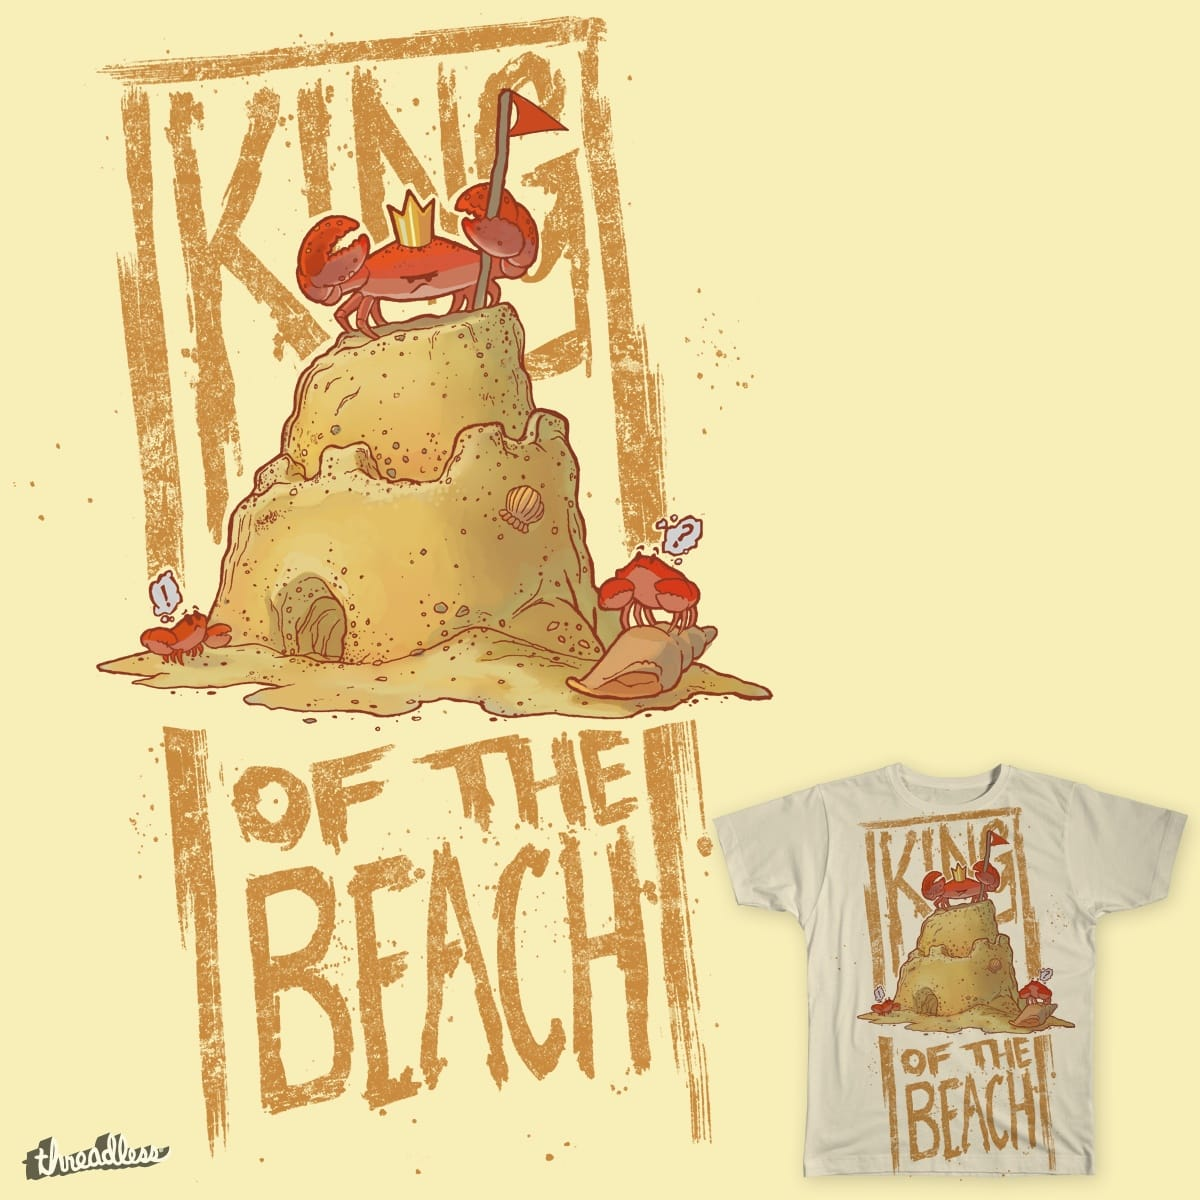 King of the Beach by Seyer21 on Threadless